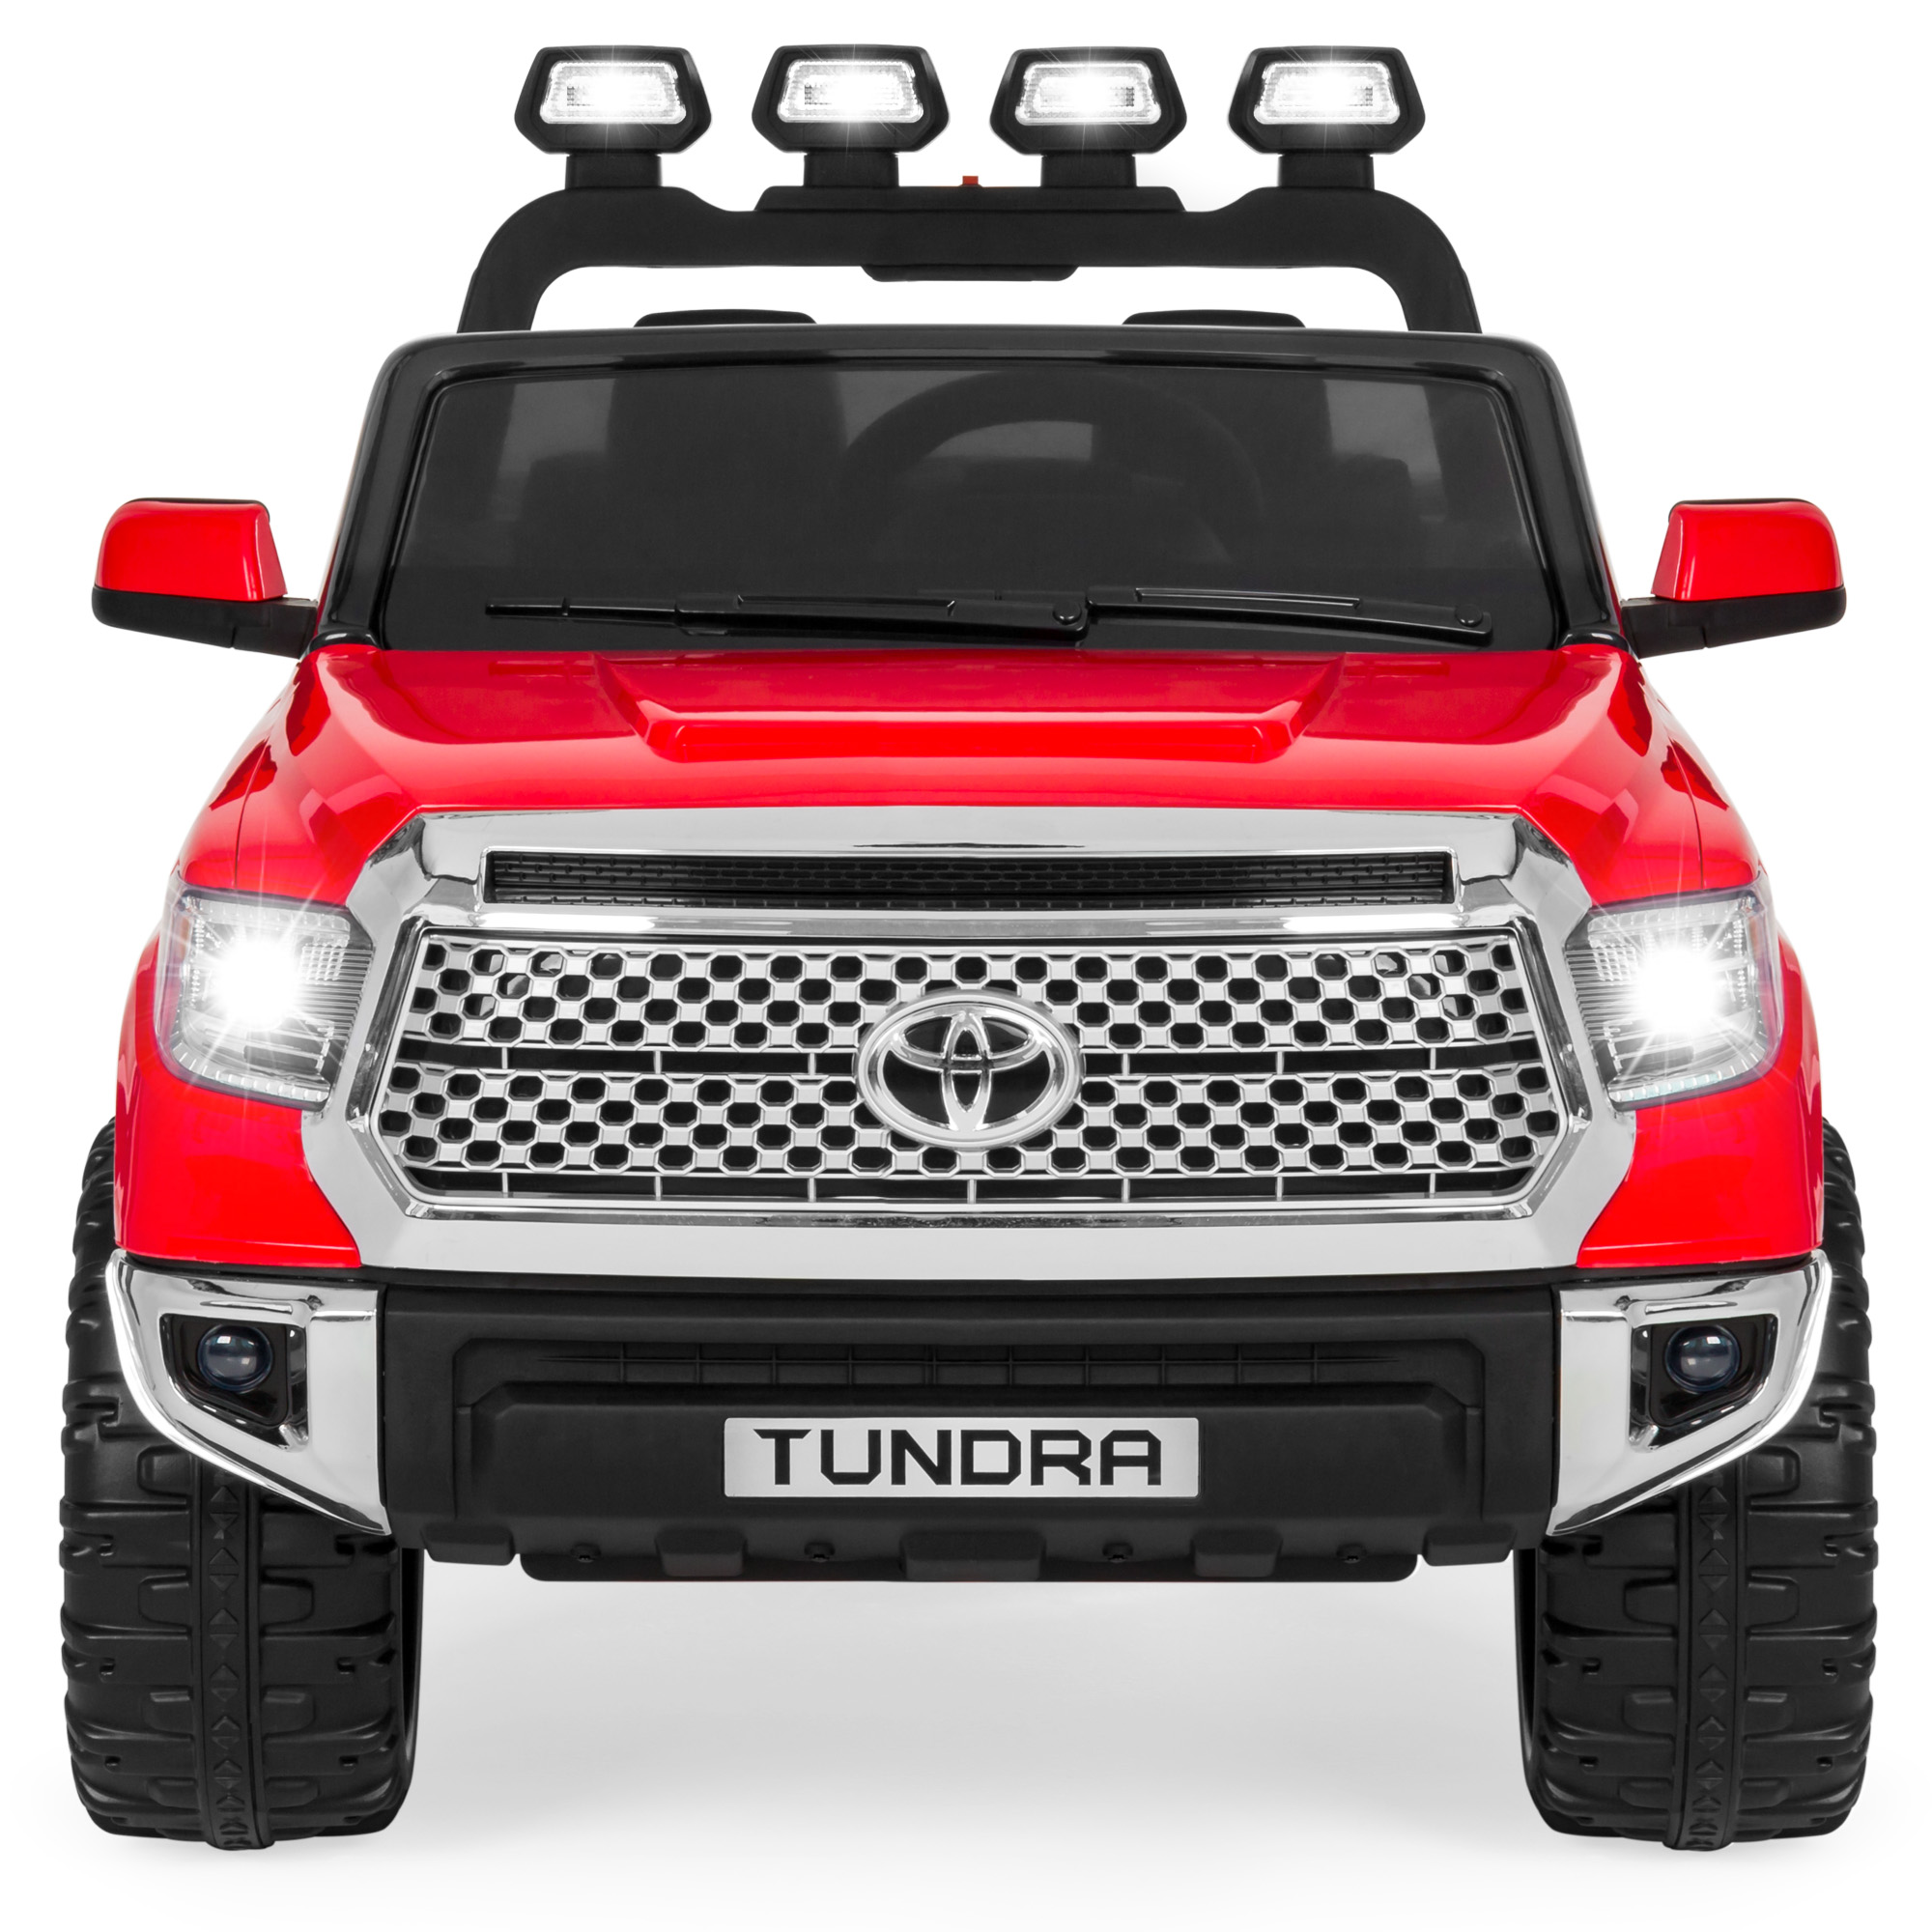 Best Choice Products 12V Kids Battery Powered Remote Control Toyota Tundra Ride On Truck w  LED Lights, Music,... by Best Choice Products